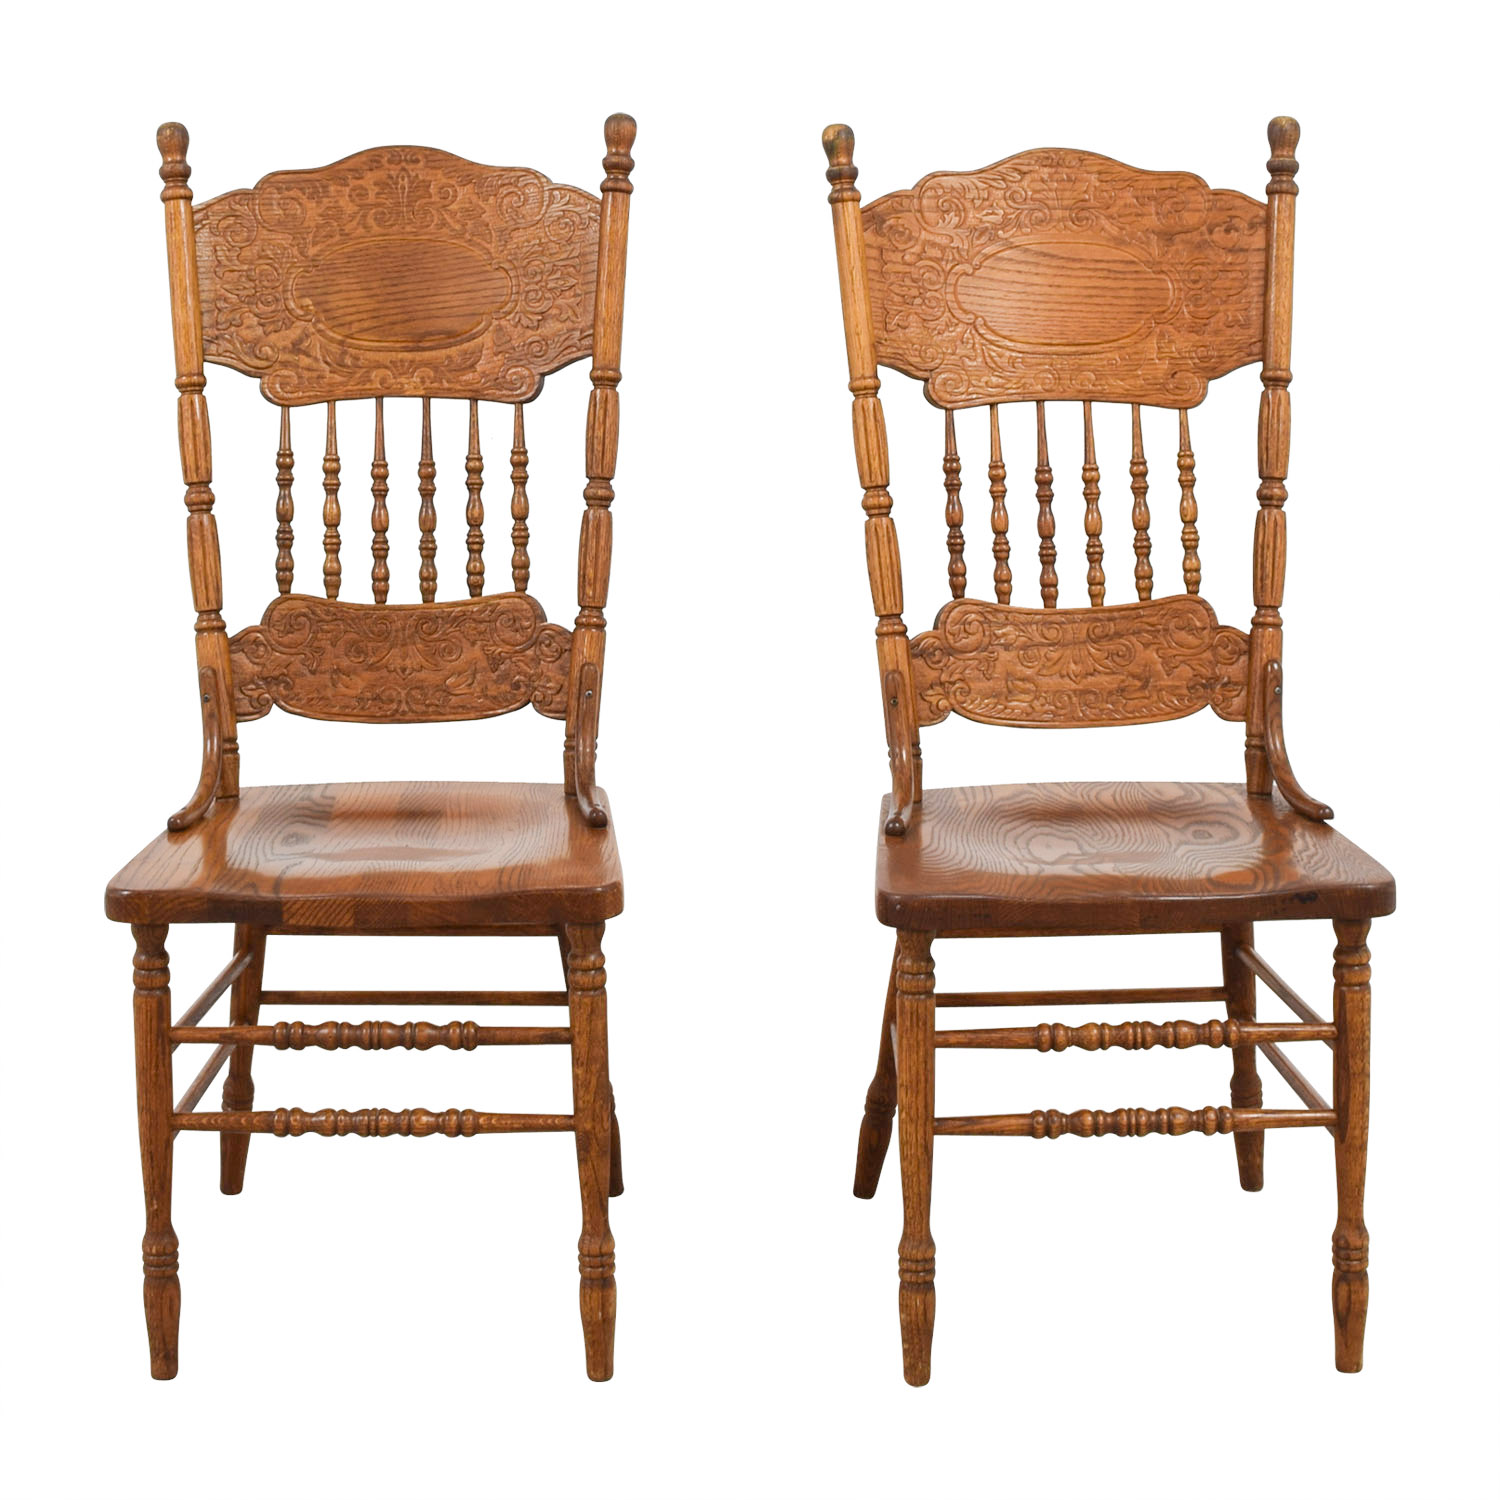 Surprising 90 Off Antique Floral Carved Wood Chairs Chairs Unemploymentrelief Wooden Chair Designs For Living Room Unemploymentrelieforg